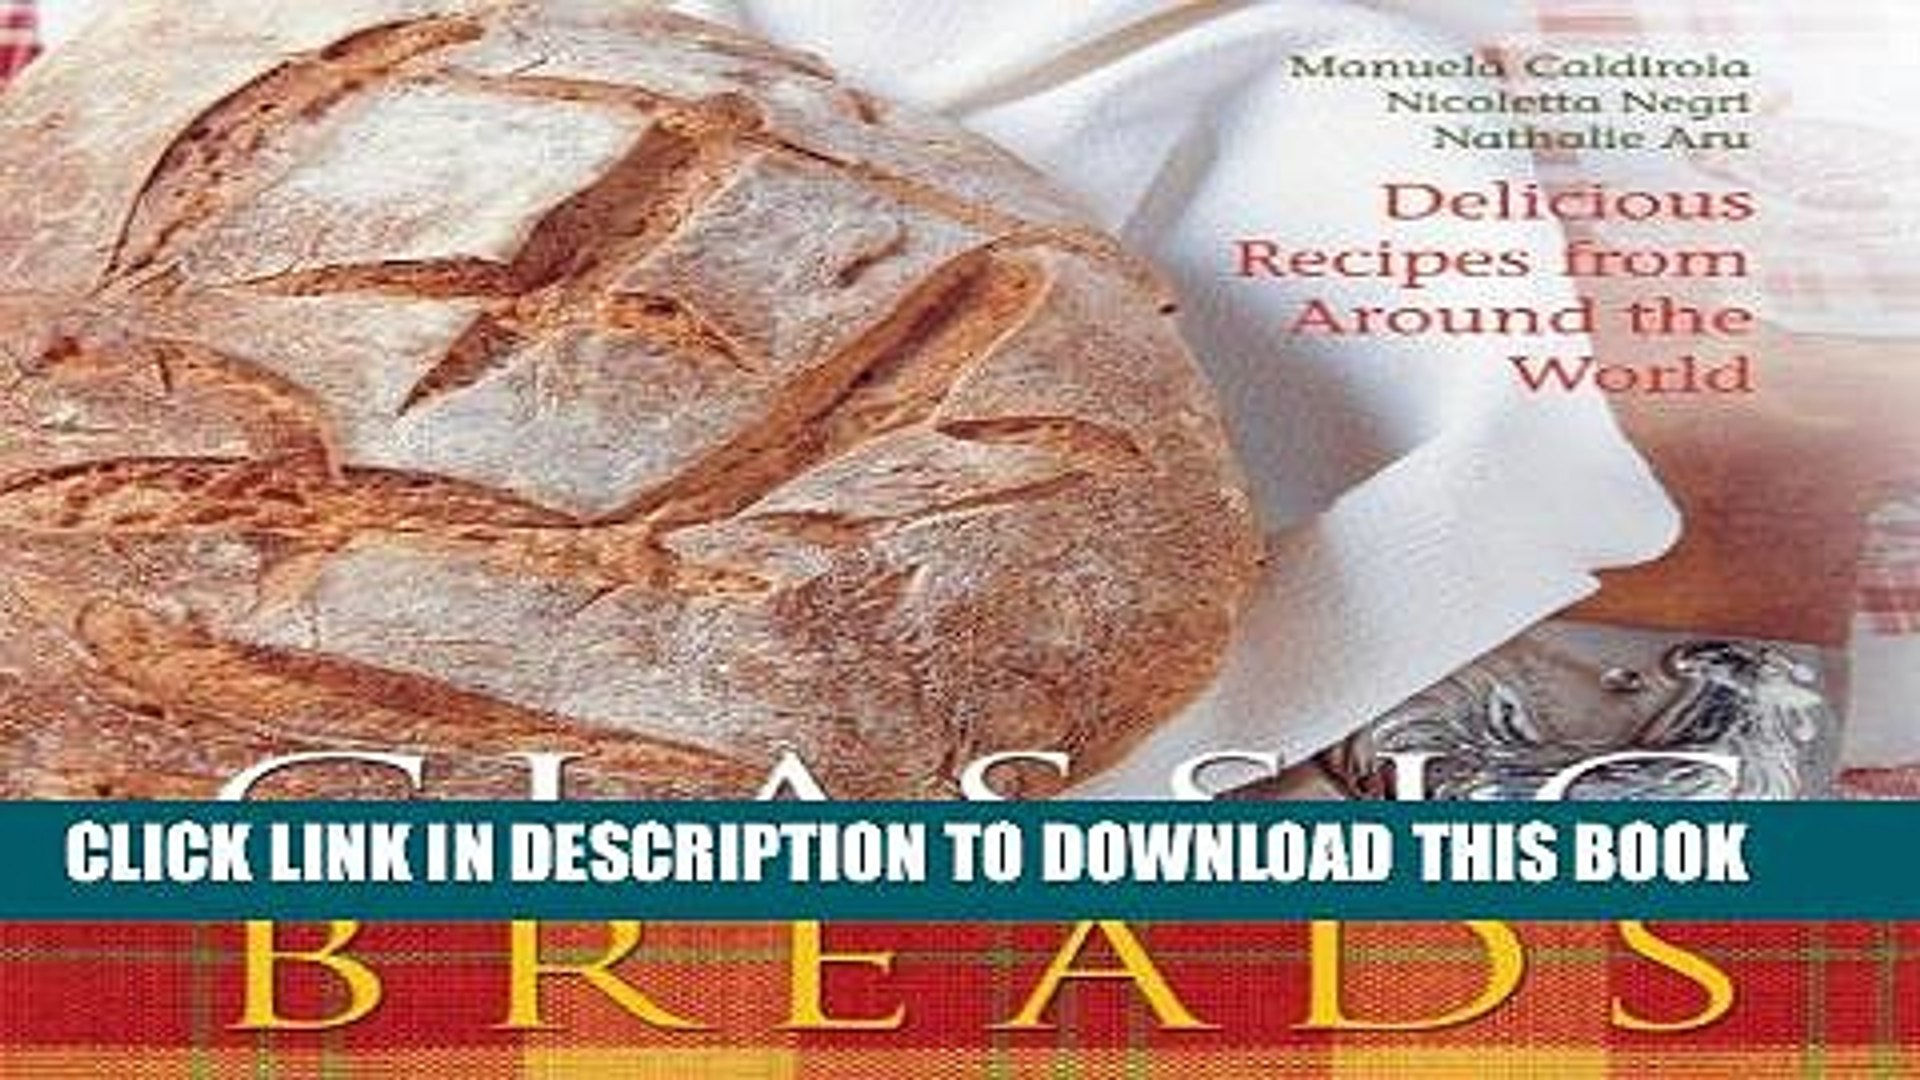 [PDF] Classic Breads: Delicious Recipes from Around the World Popular Online